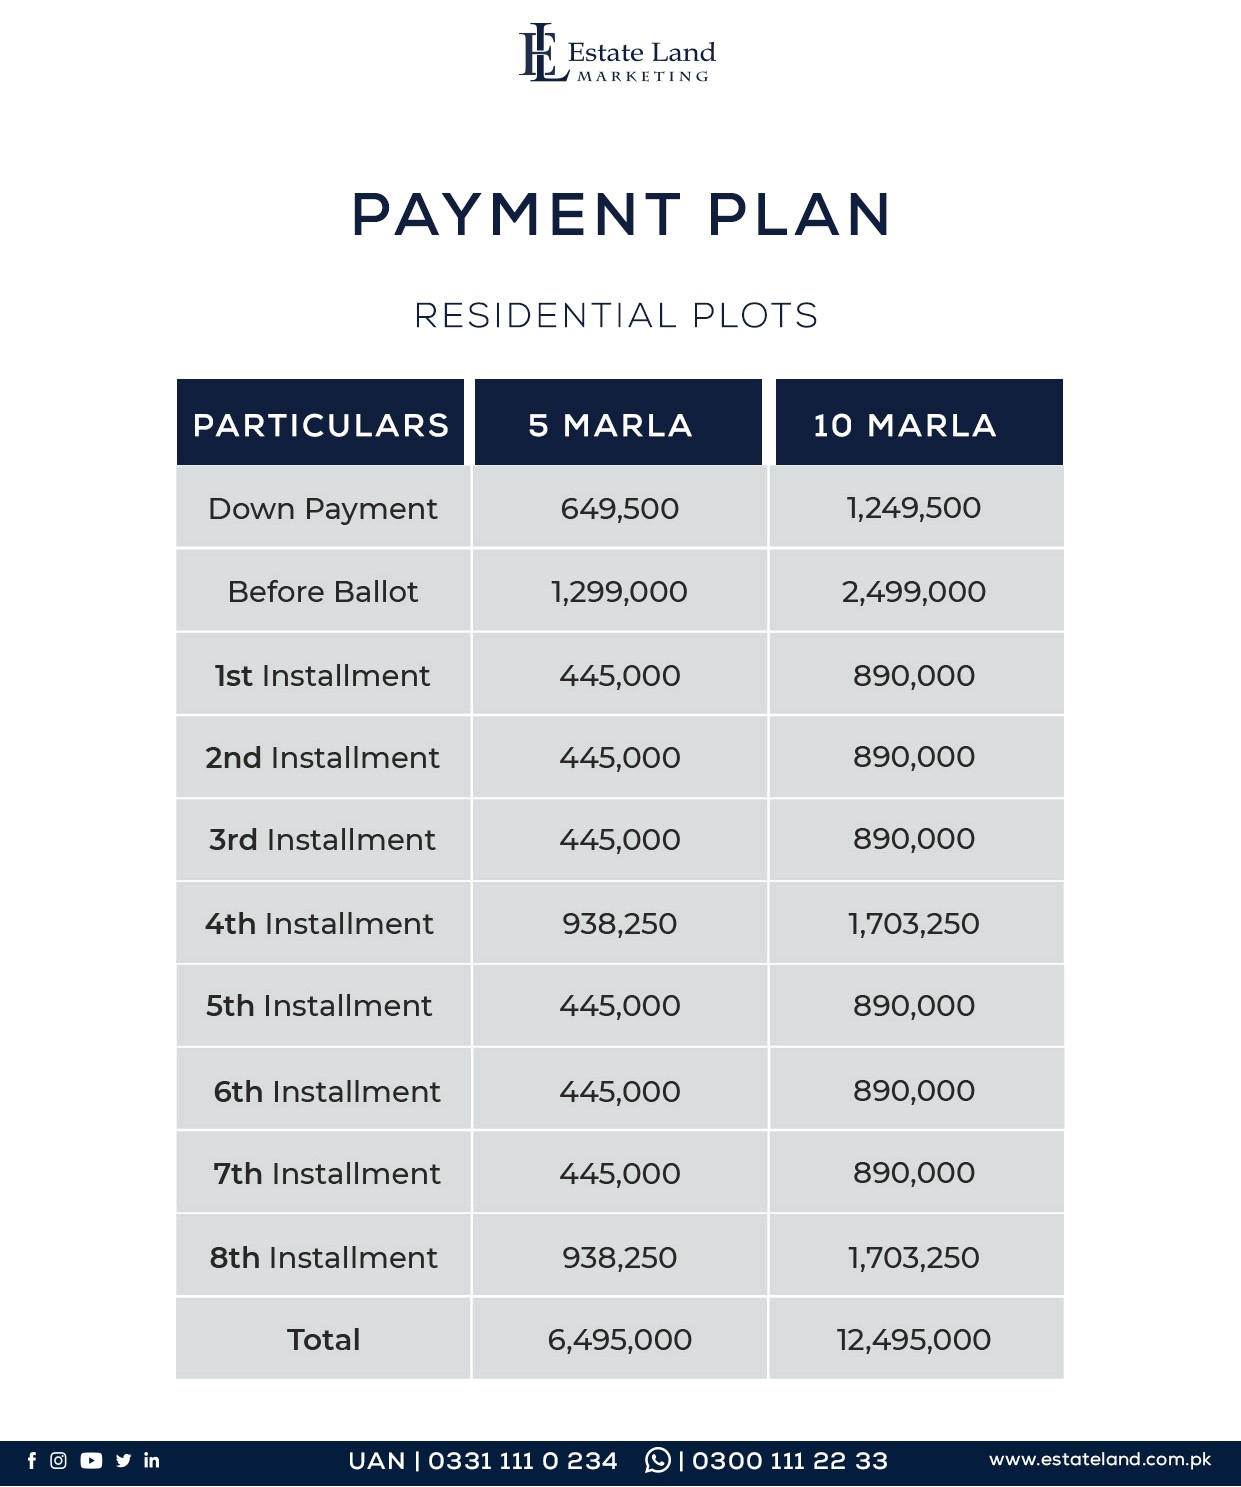 etihad town lahore payment plan of residential plots